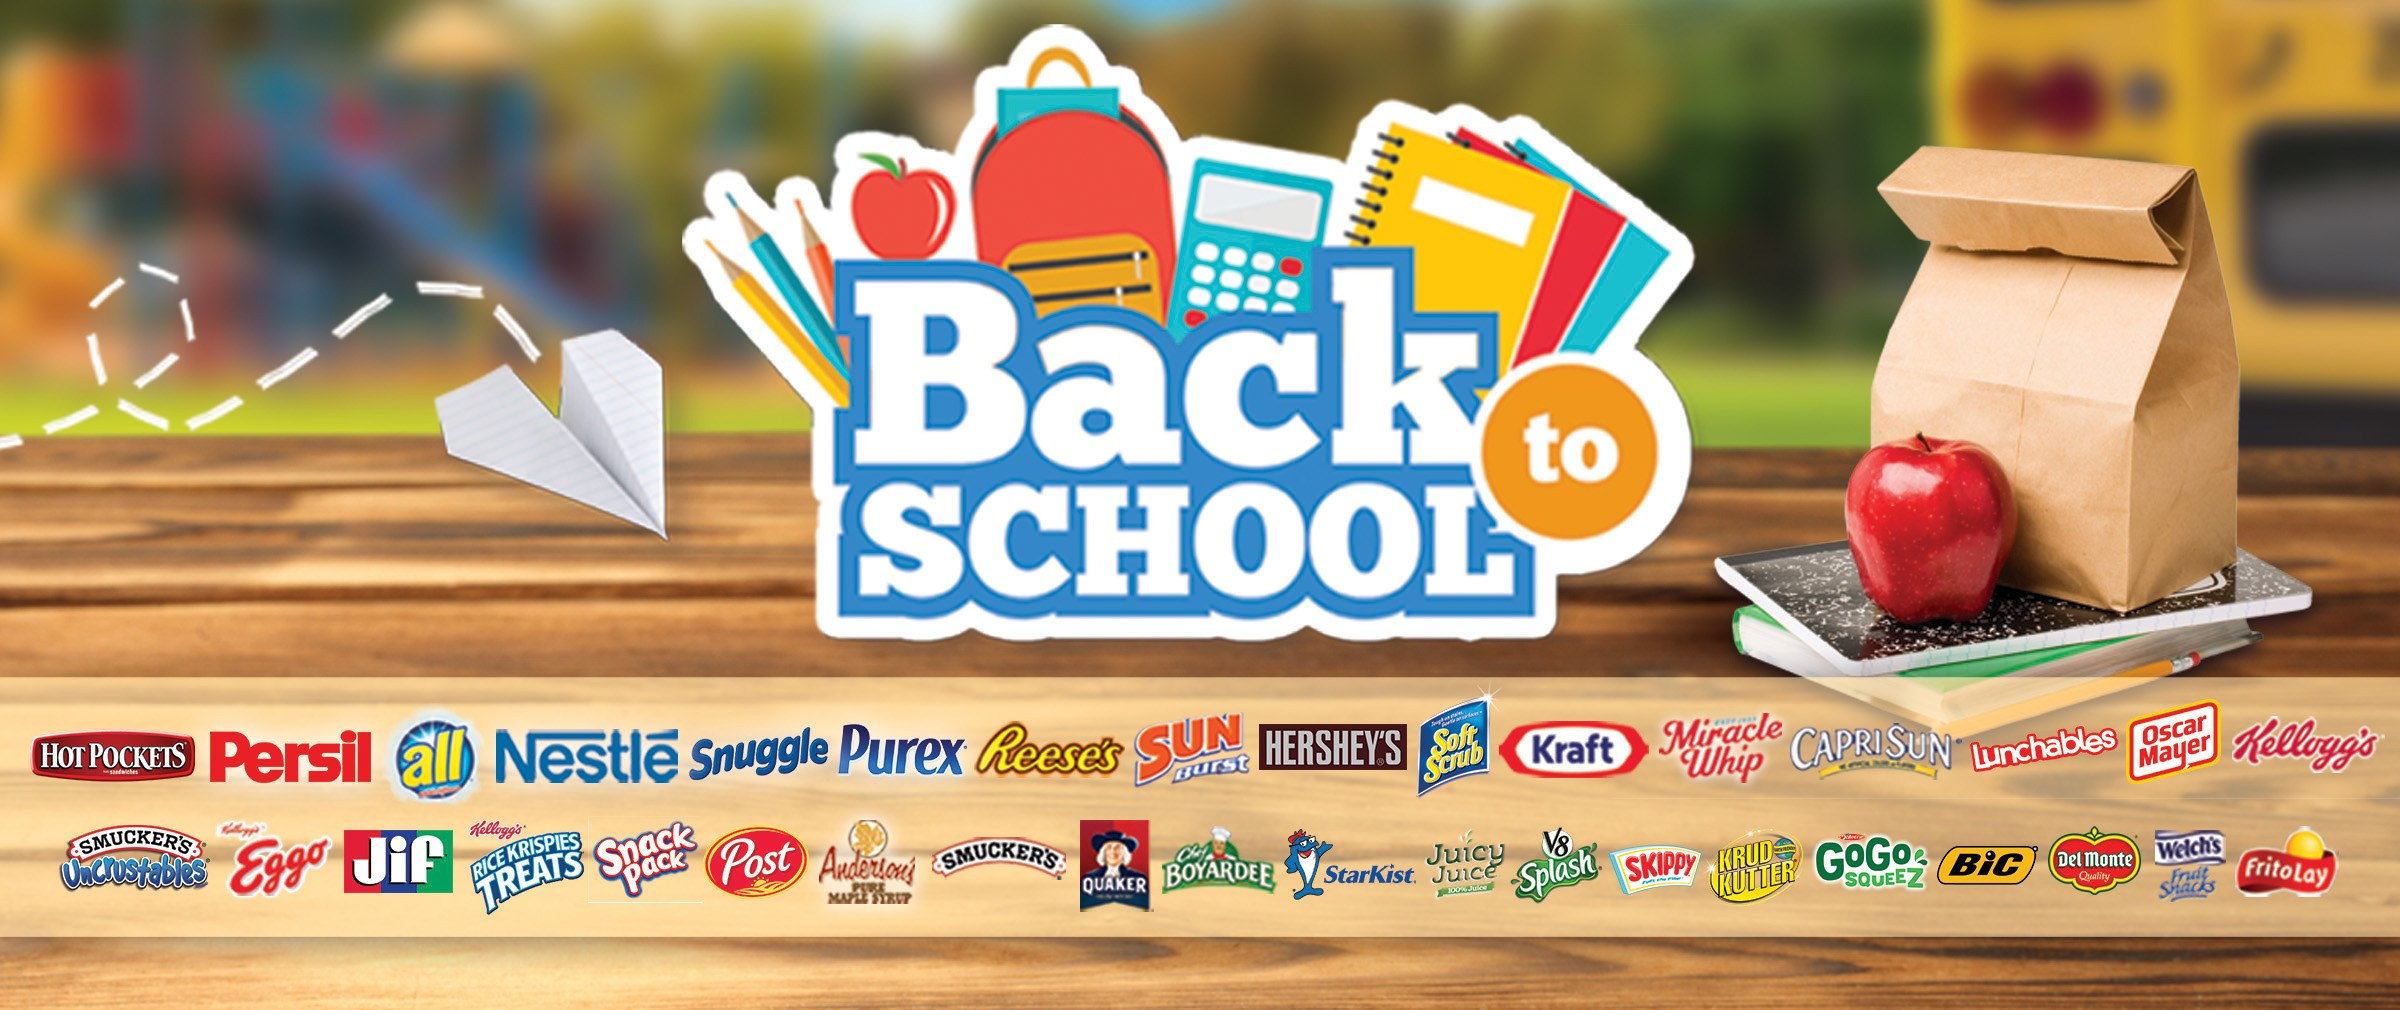 BackToSchool-webslider